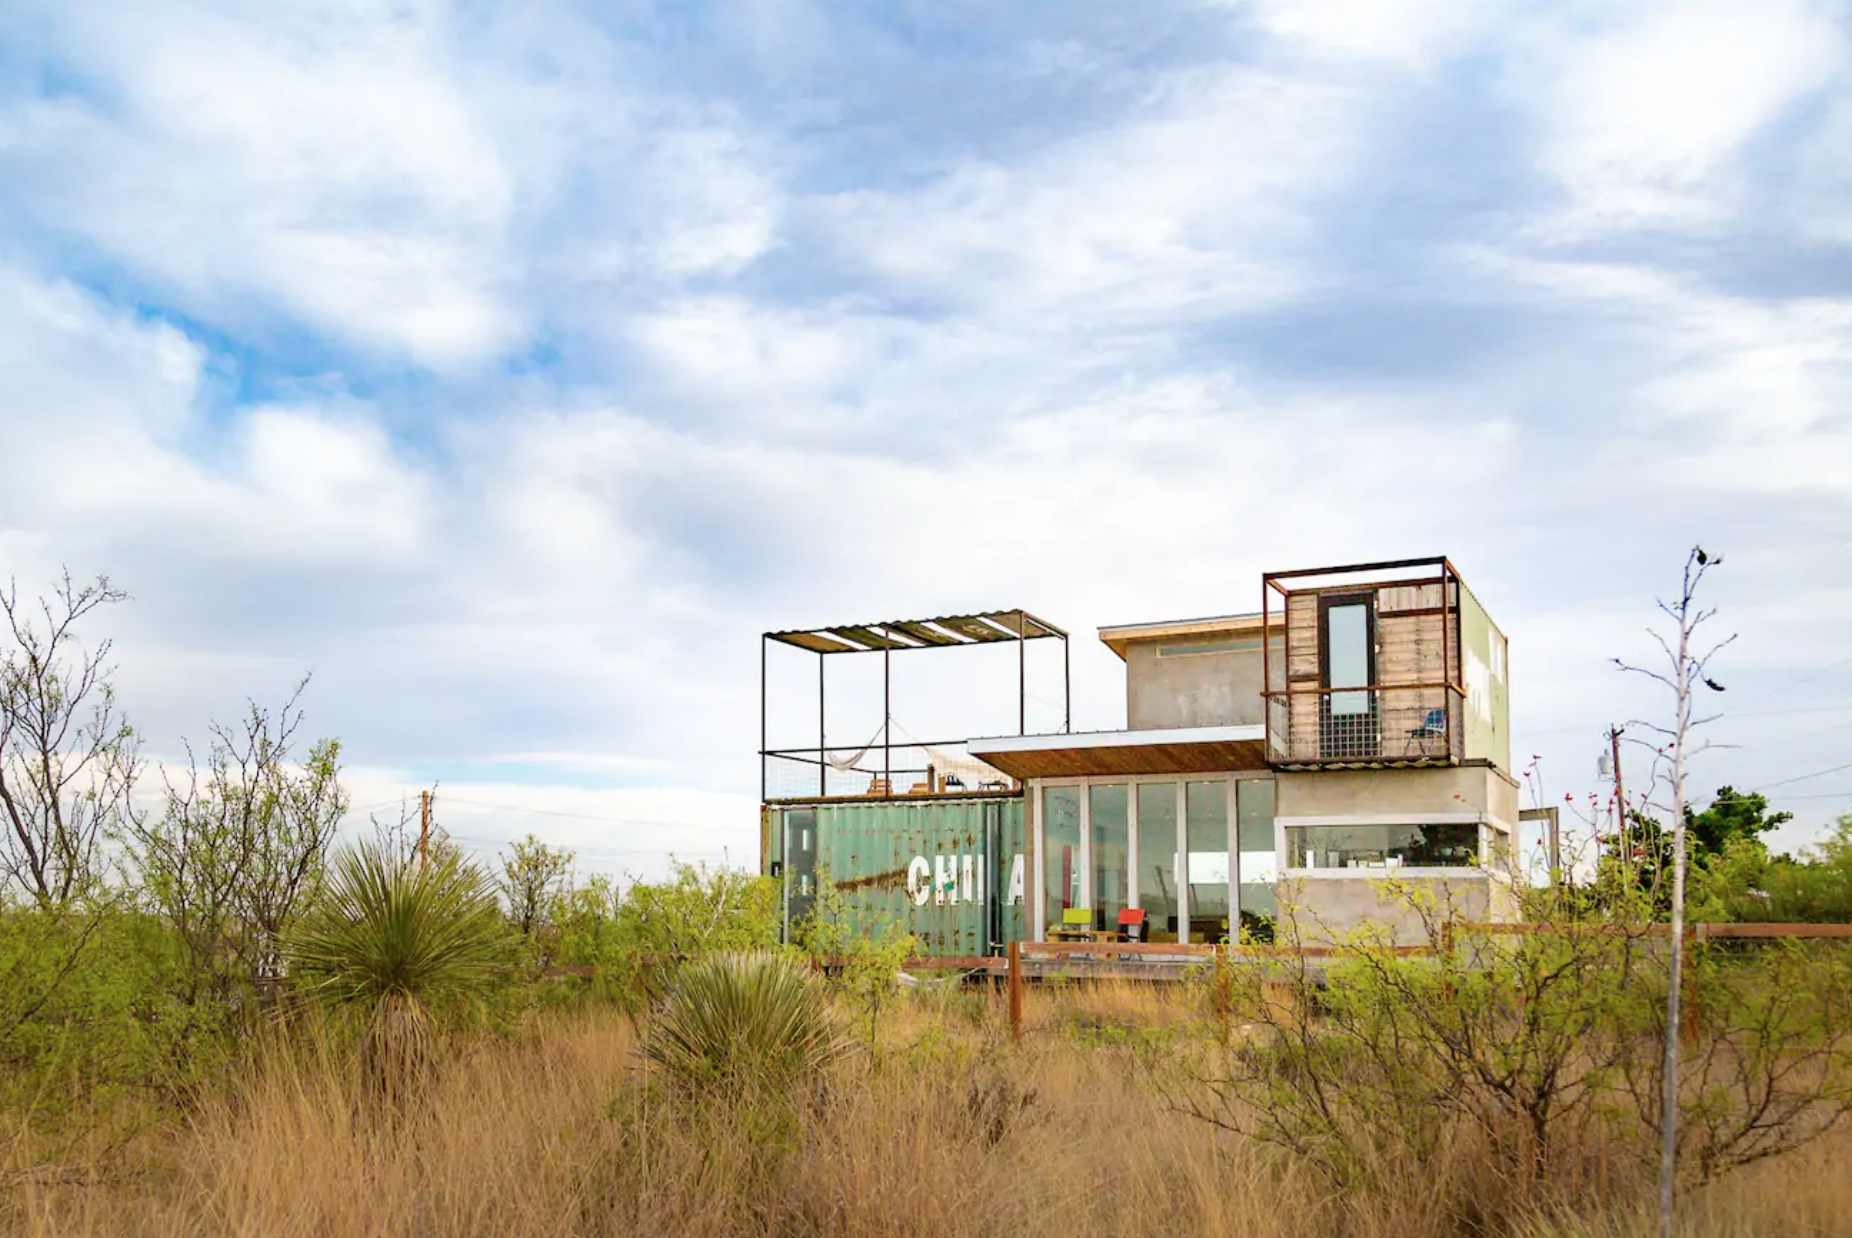 Hermosa Container House   Photo via Airbnb